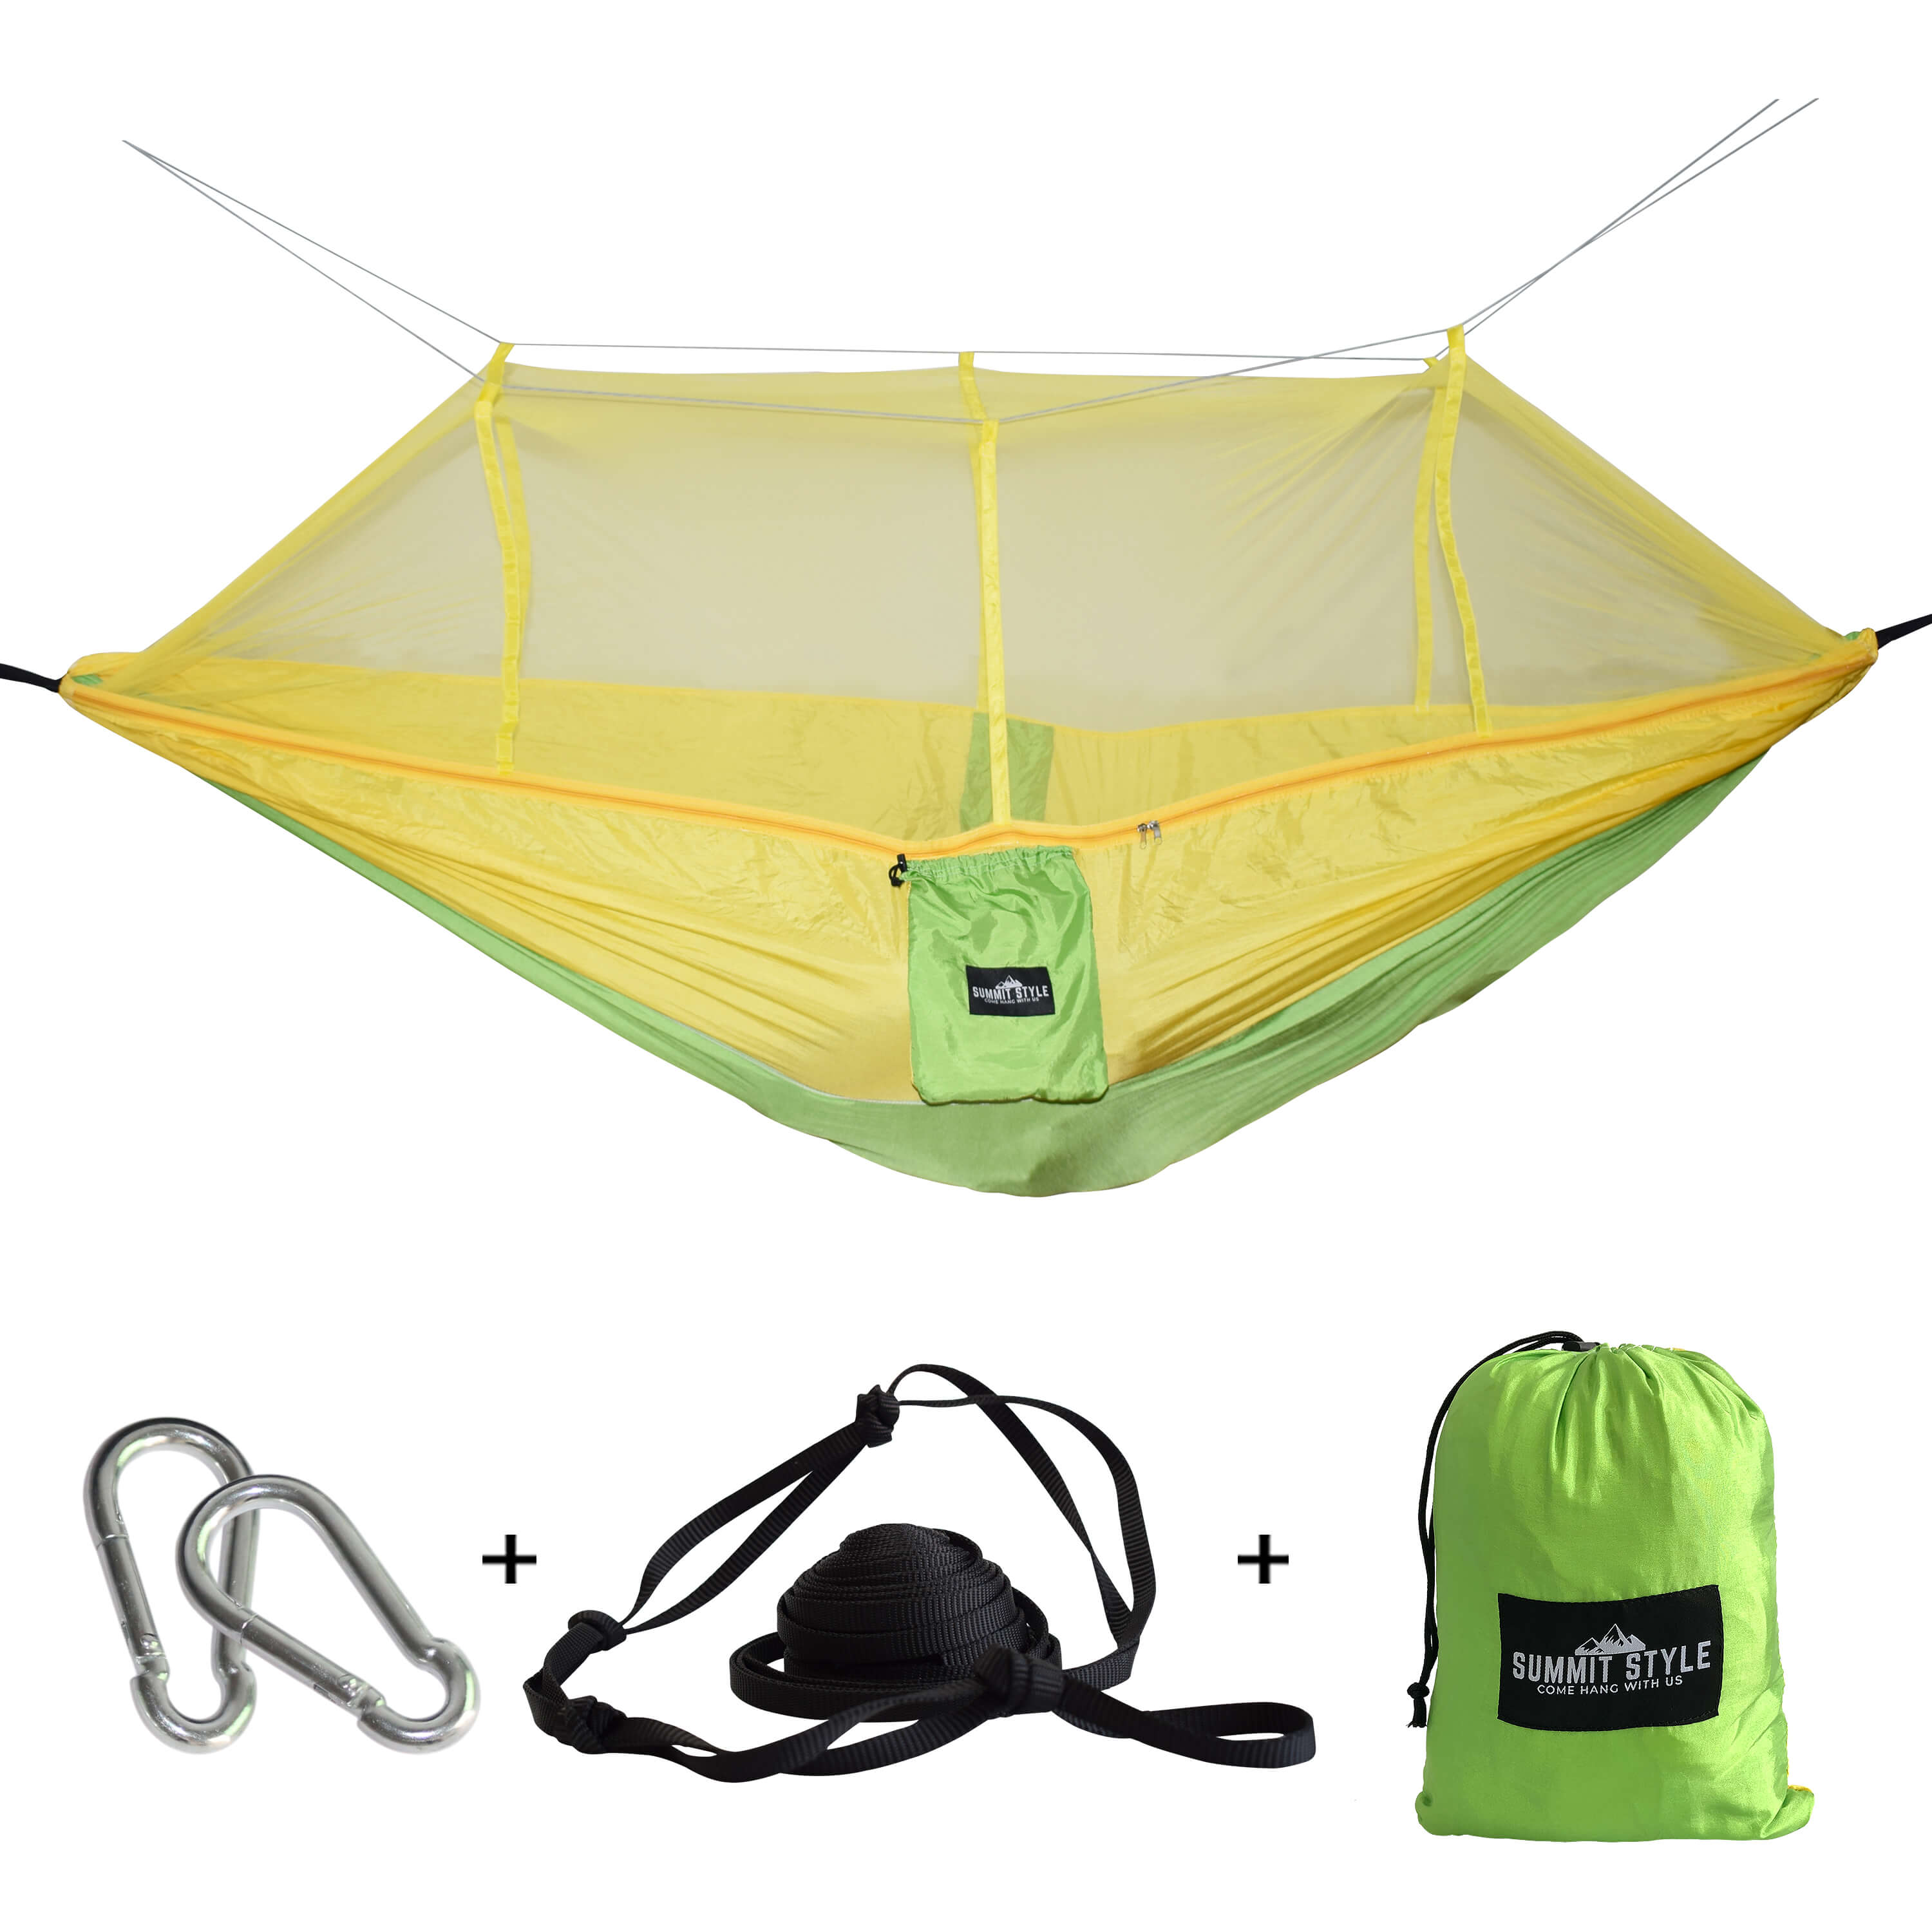 Summit Style's Nature Nest Hammock with Mosquito Net: Yellow